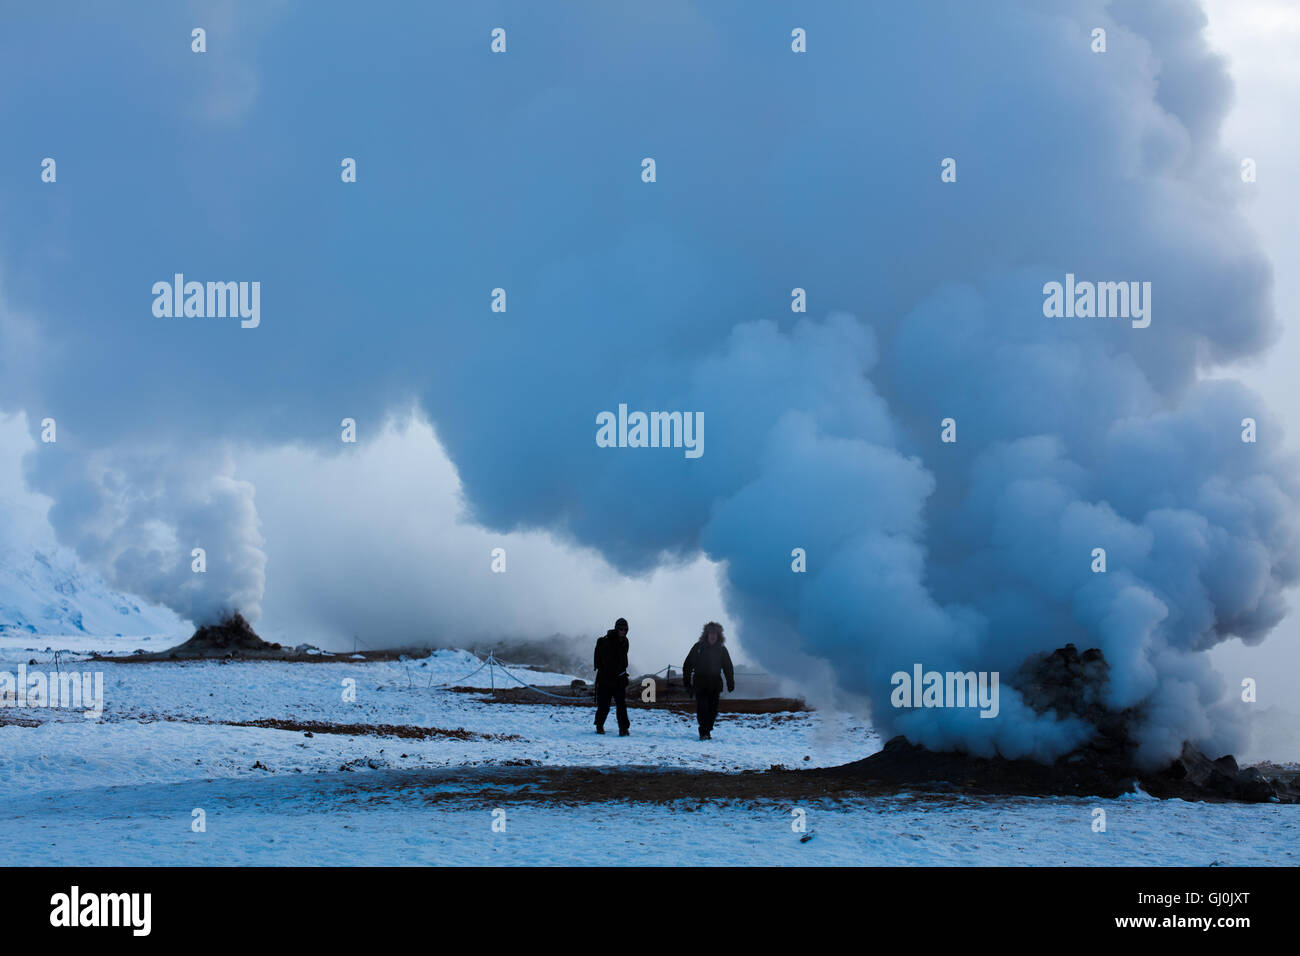 Figures emerging from the geysers at Hverarönd, near Myvatn, north eastern Iceland - Stock Image